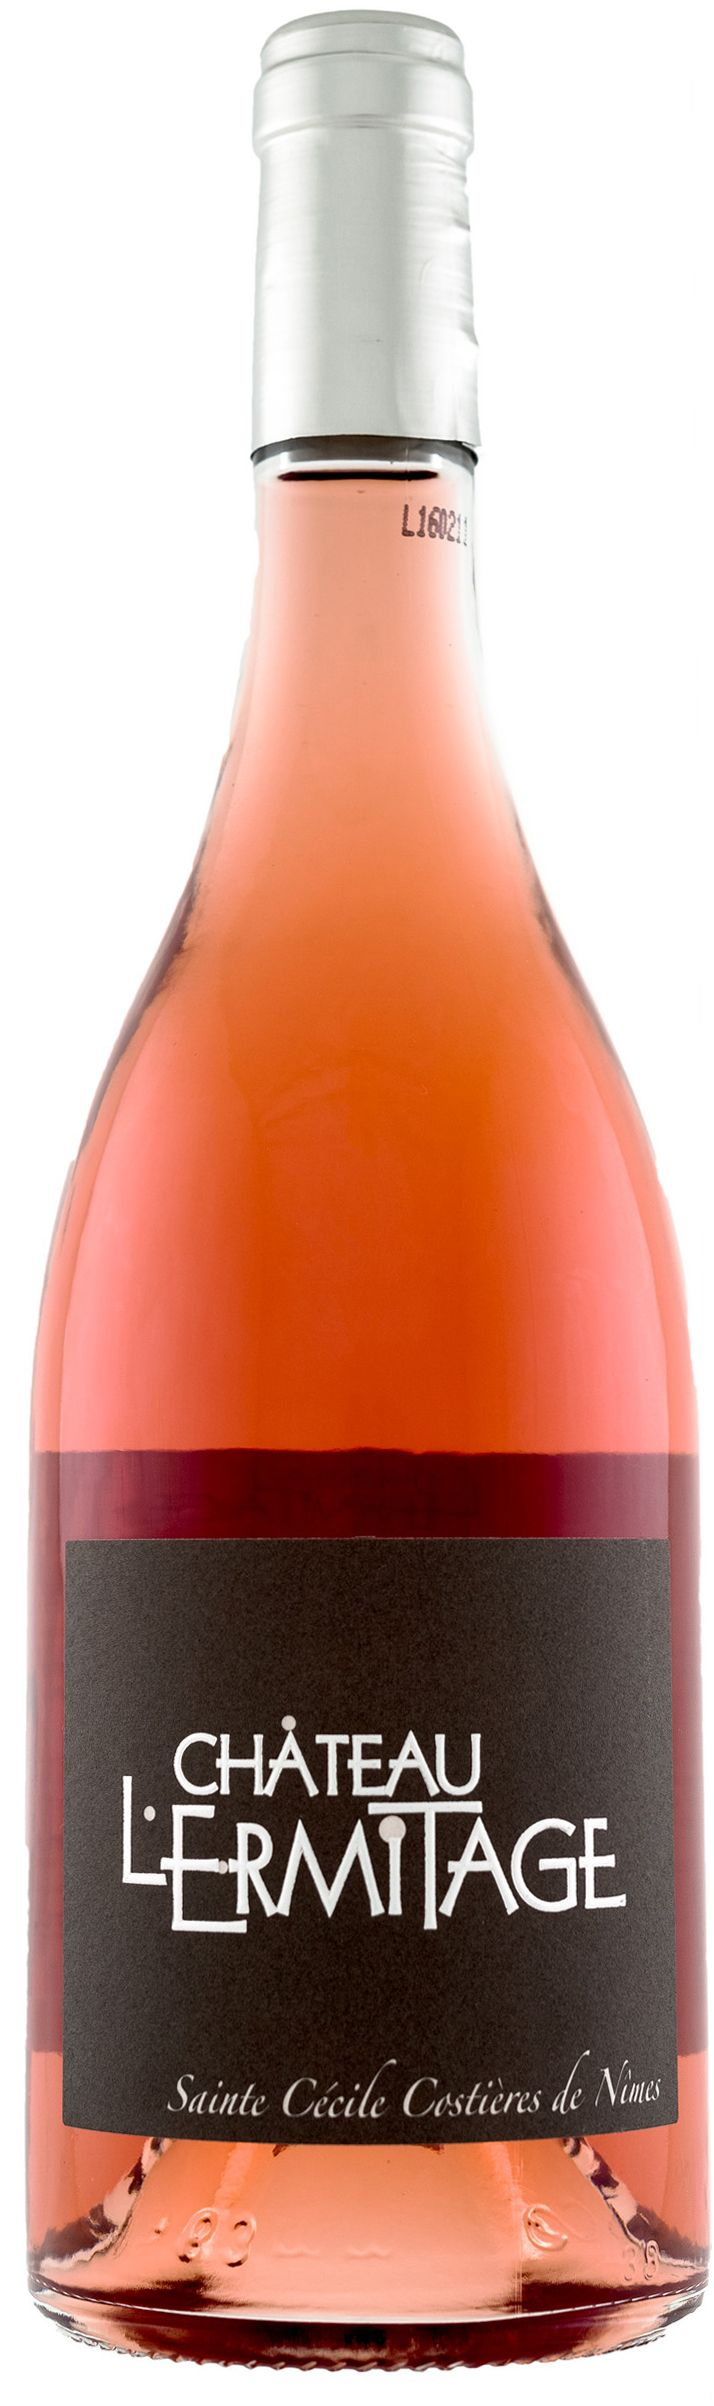 Chateau l'Ermitage, Sainte Cecile Rose, 2015